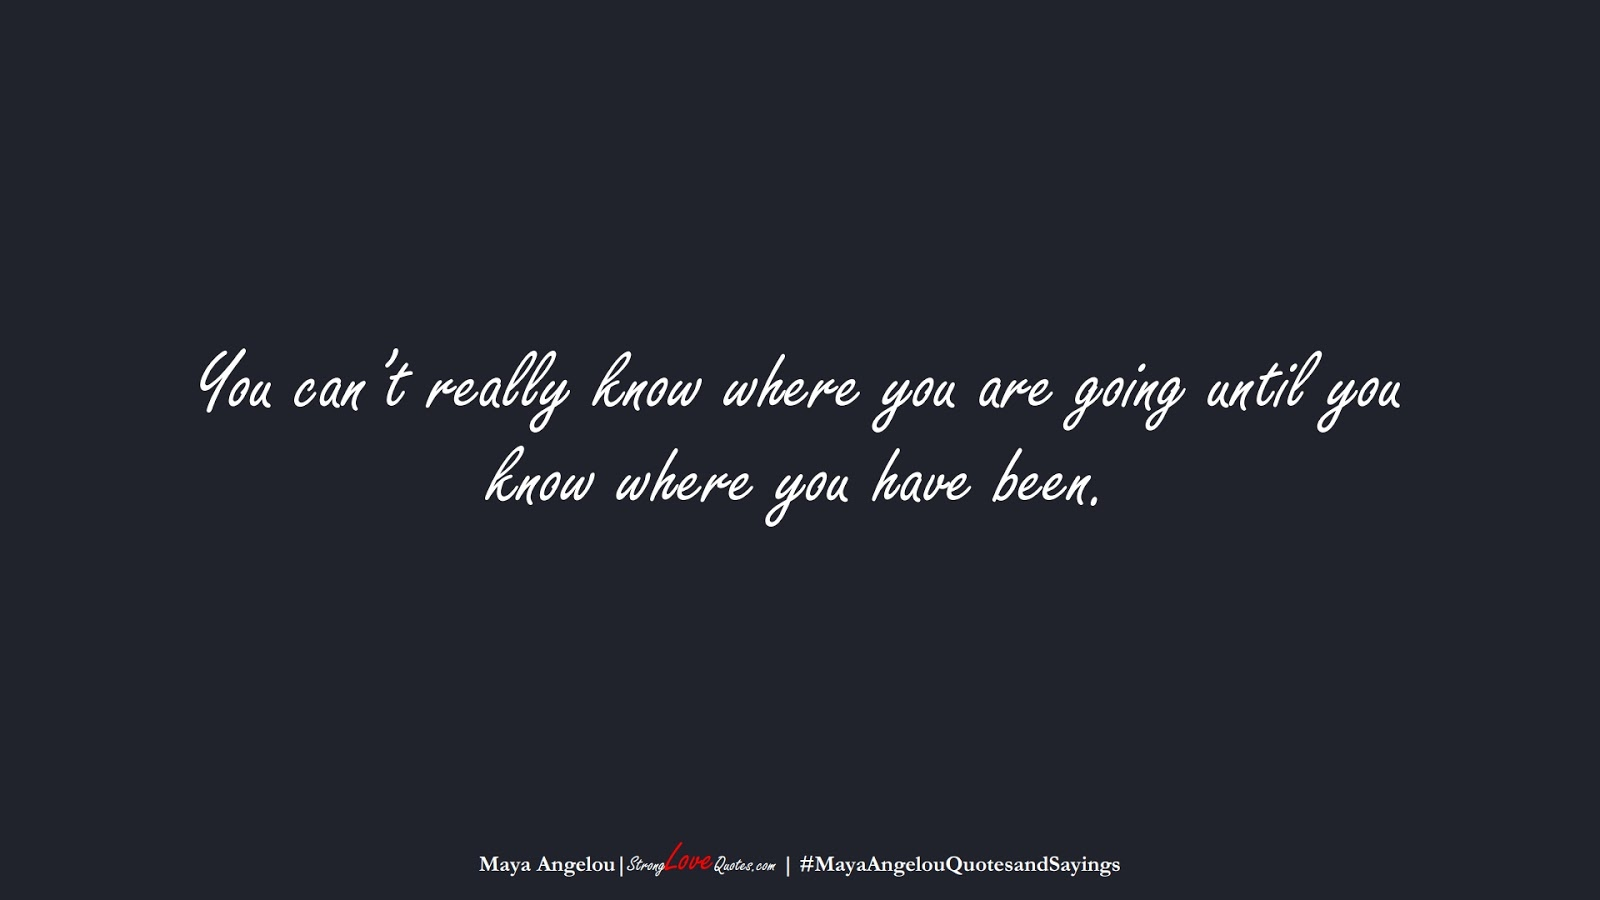 You can't really know where you are going until you know where you have been. (Maya Angelou);  #MayaAngelouQuotesandSayings